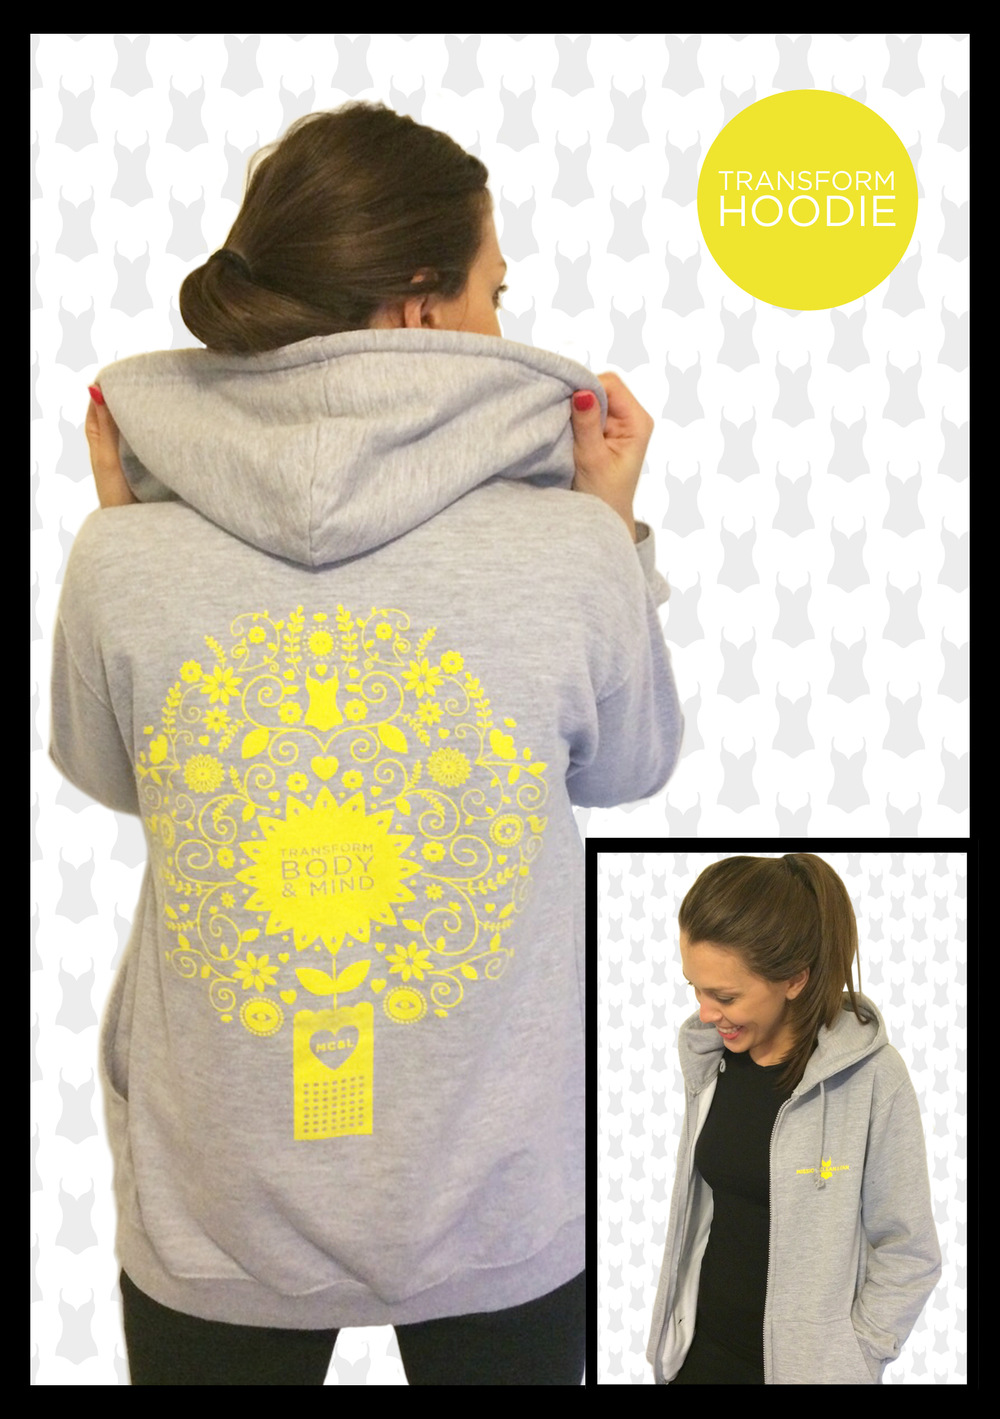 'Transform Body & Mind' in this stylish soft grey marl zip up hoodie with beautiful yellow design on the back. Made from 80% cotton/20% polyester and washable at 40C it has drawstring hood and split front pouch pocket with yellow logo on the right breast.  Available in size S, M or L (8-10, 12-14 or 16-18)  £35 plus £4.50 p&p